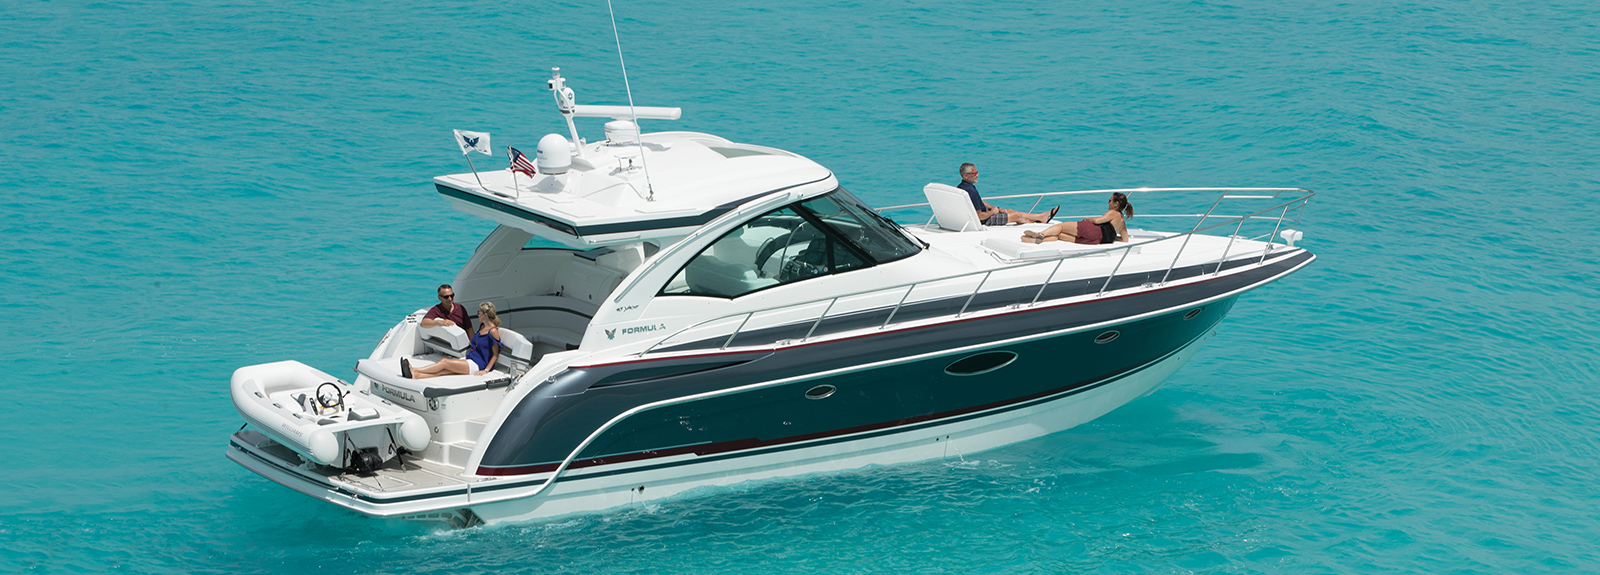 Meet the Formula 45 Yacht